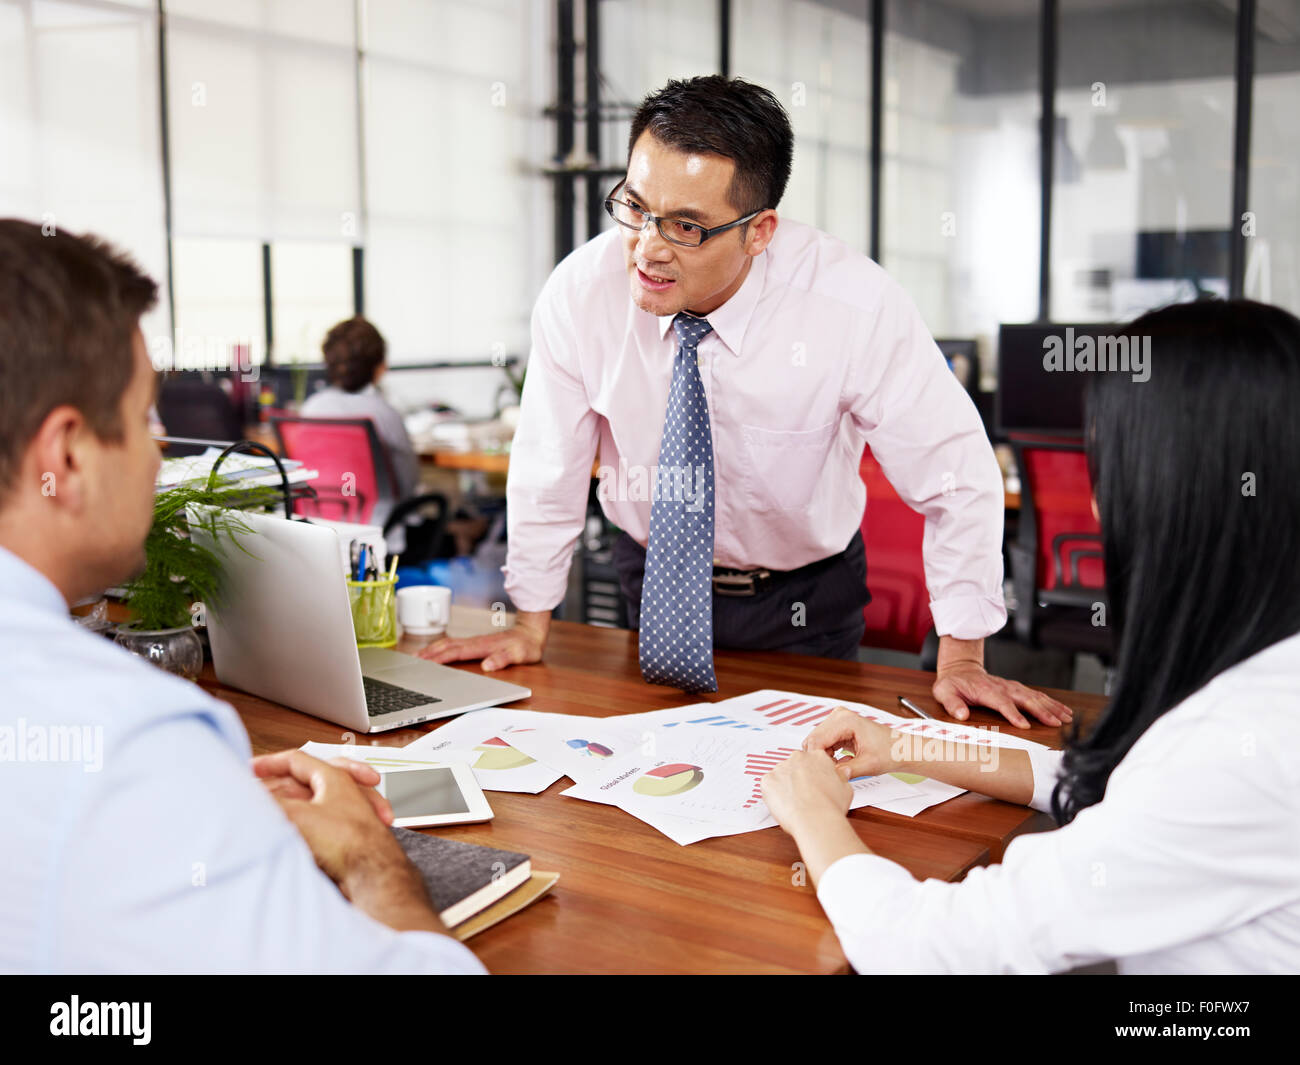 poor management style - Stock Image